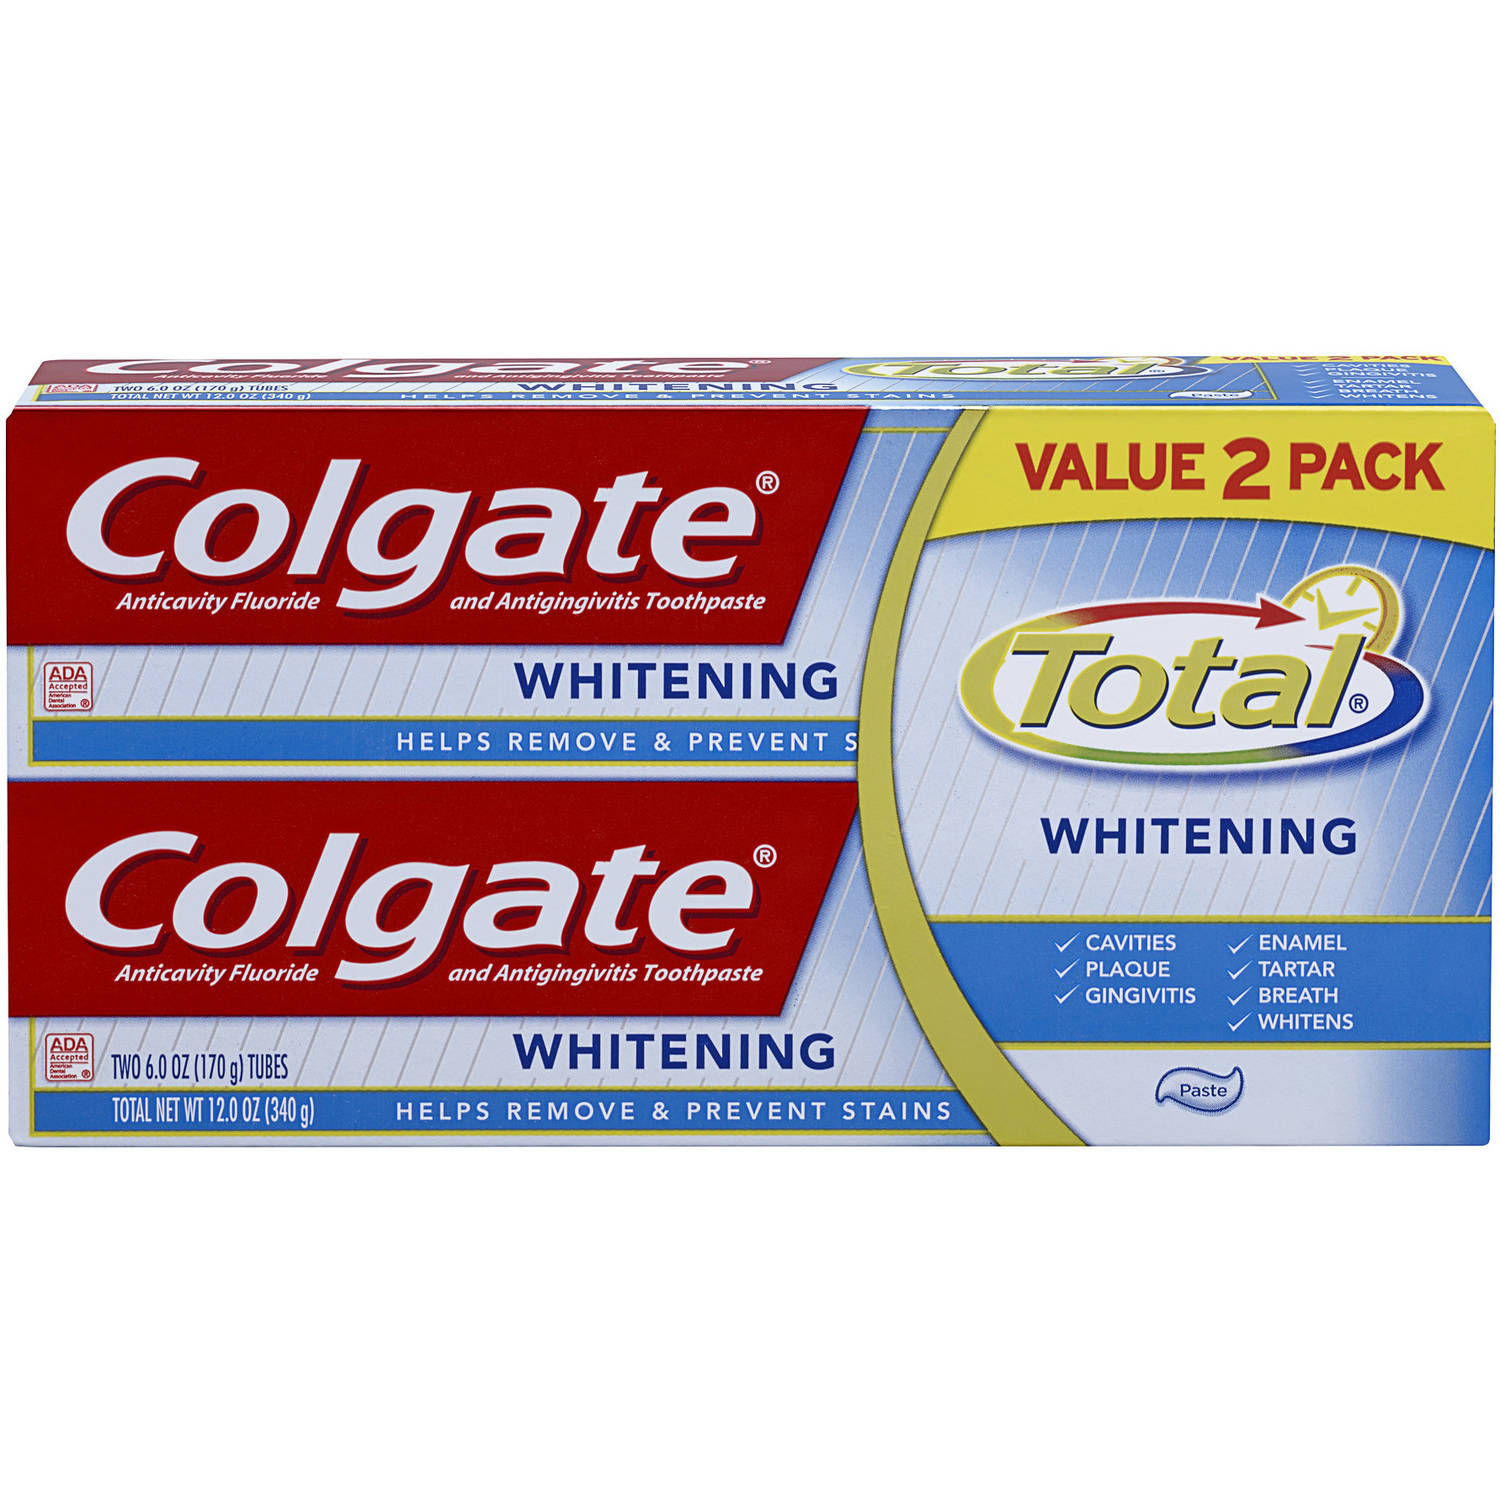 Colgate Total Anticavity Fluoride & Antigingivitis Whitening Toothpaste, 6 oz, 2 pack